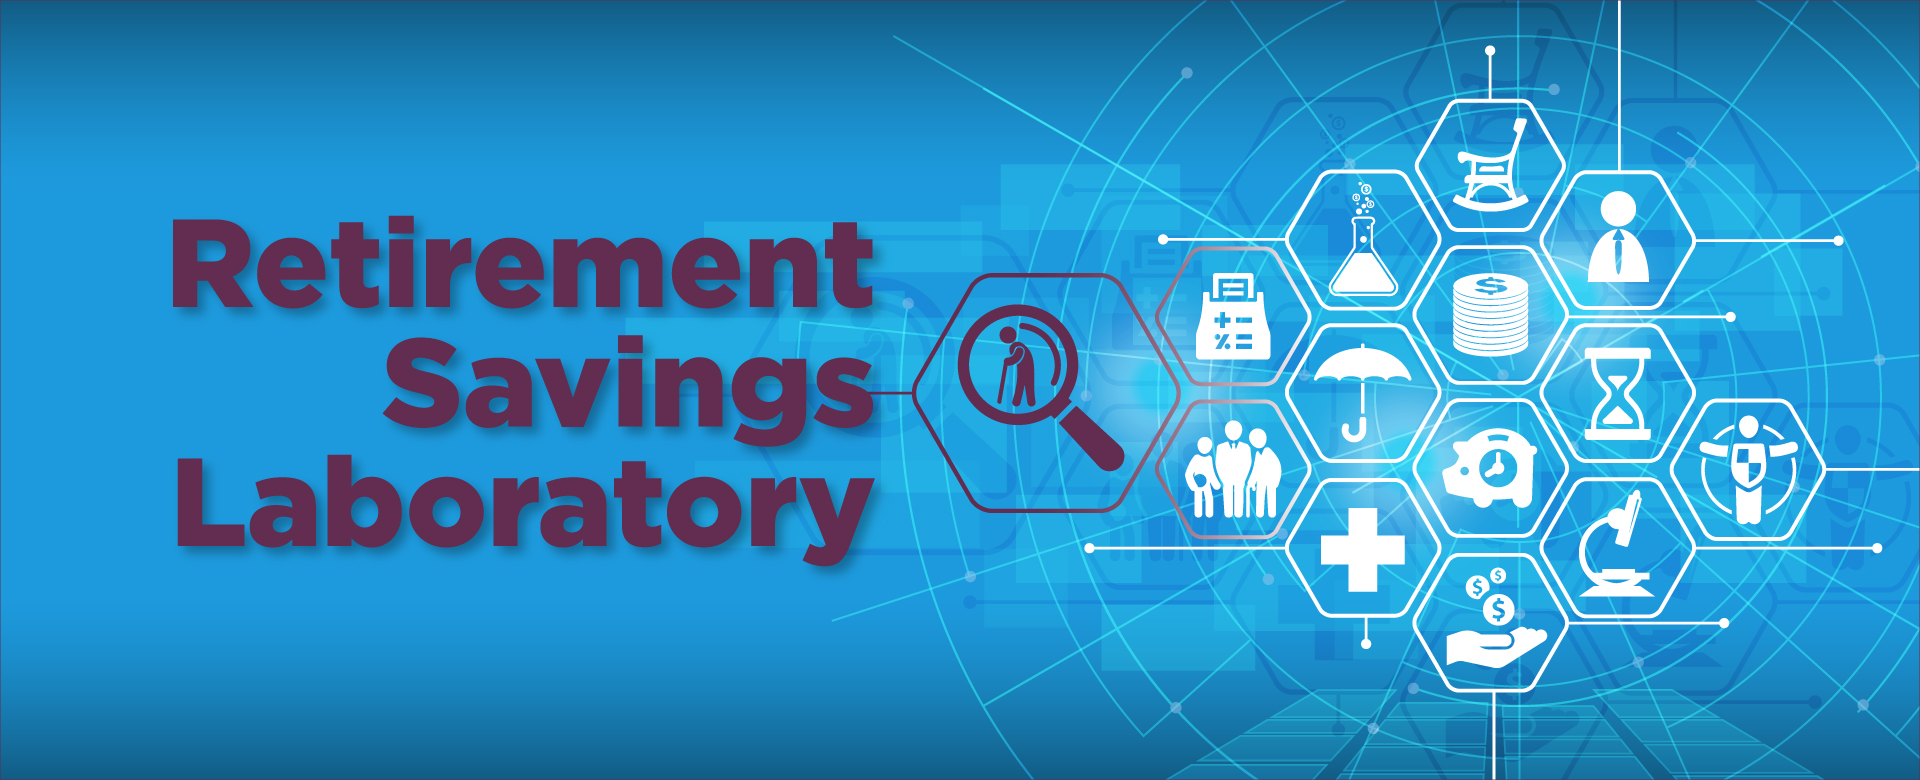 Retirement Savings Laboratory